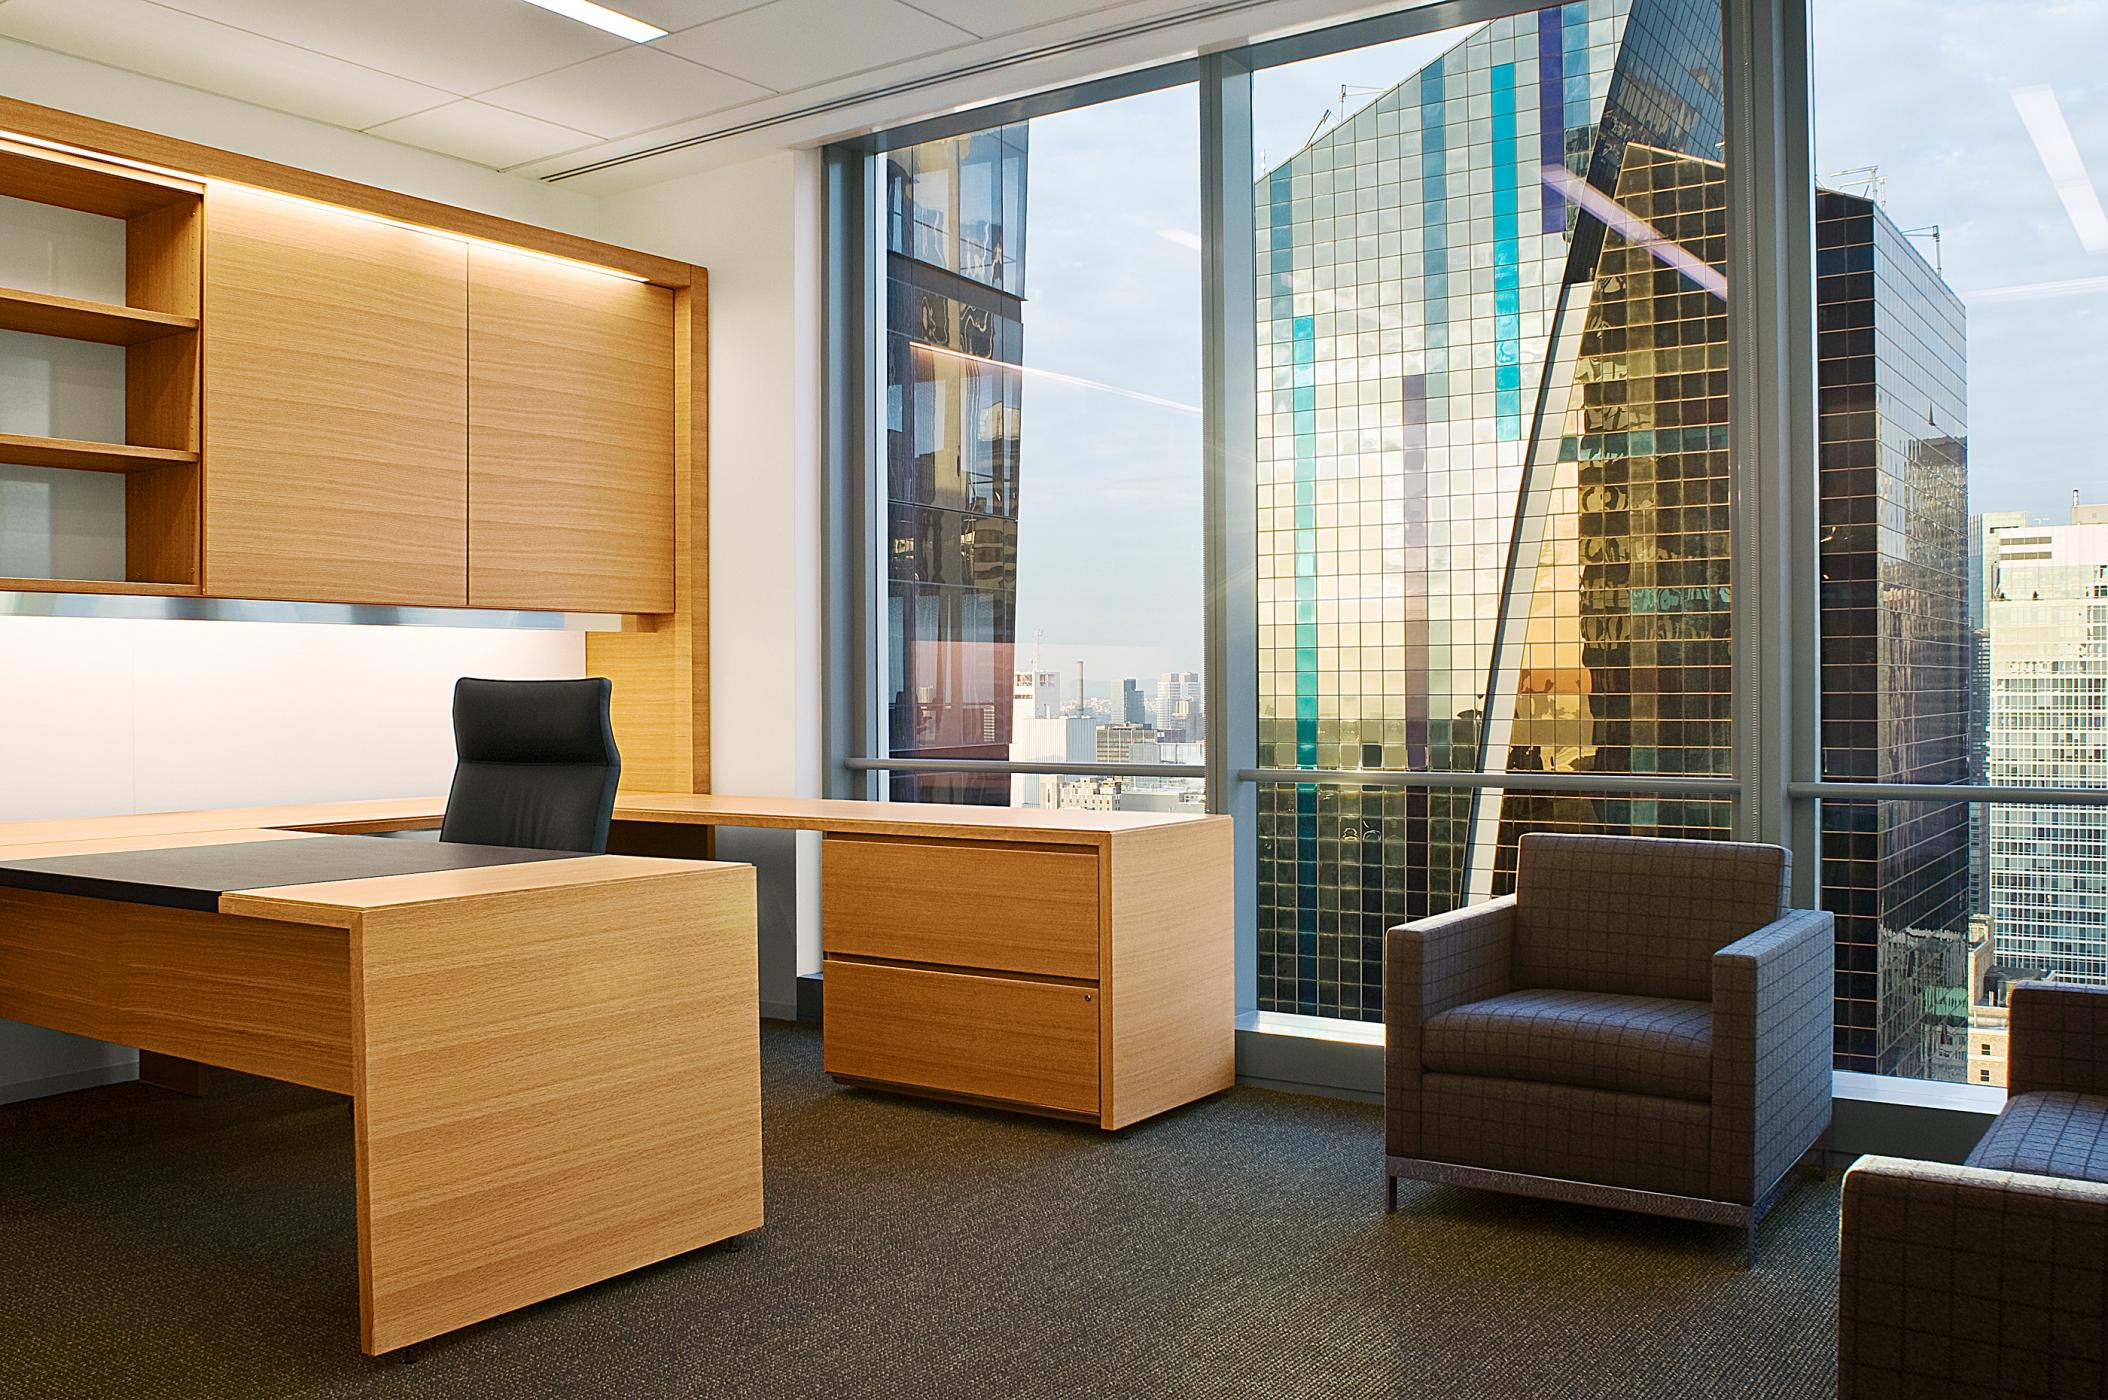 Offices incorporate cerused oak veneers, sliding doors, metal detailing, and integrated lighting.